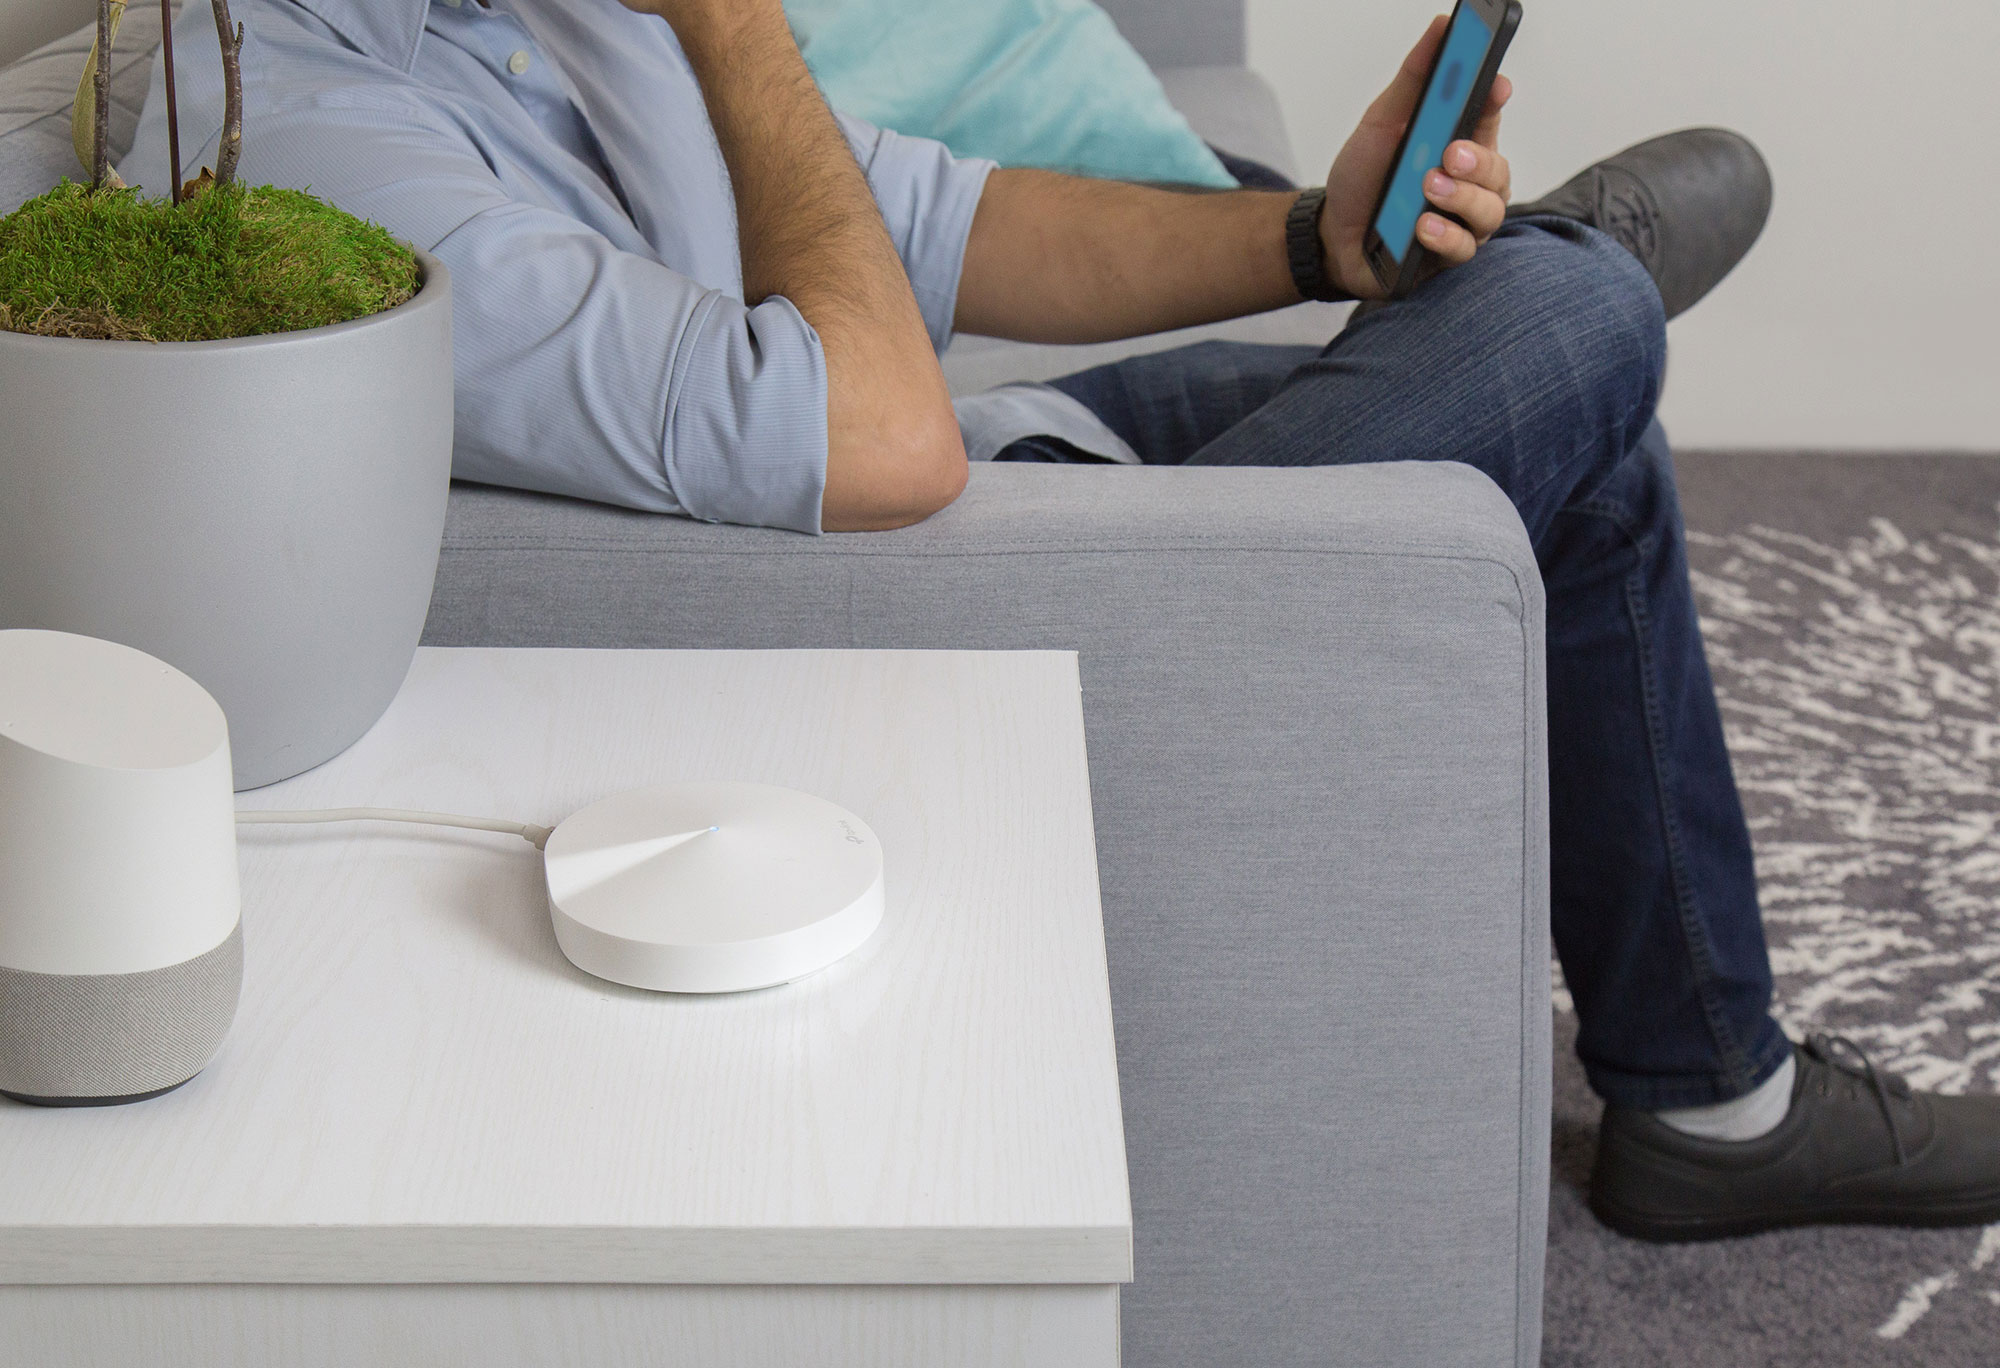 TP-Link connects homes with seamless WiFi via mesh networking – Pickr